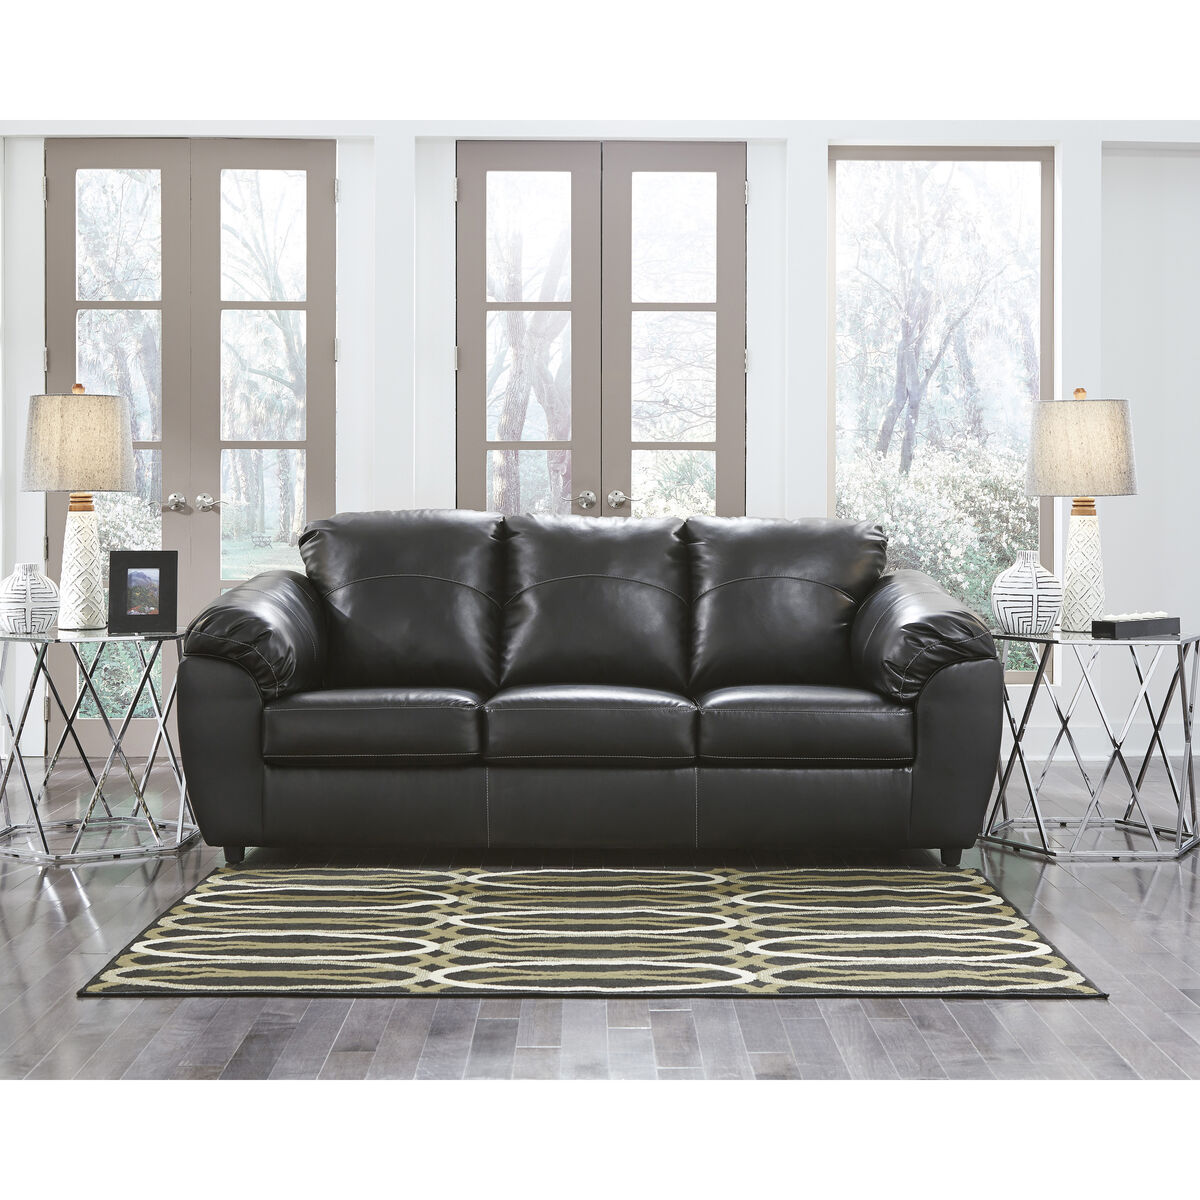 Our Benchcraft Fezzman Sofa In Black Leather Is On Now